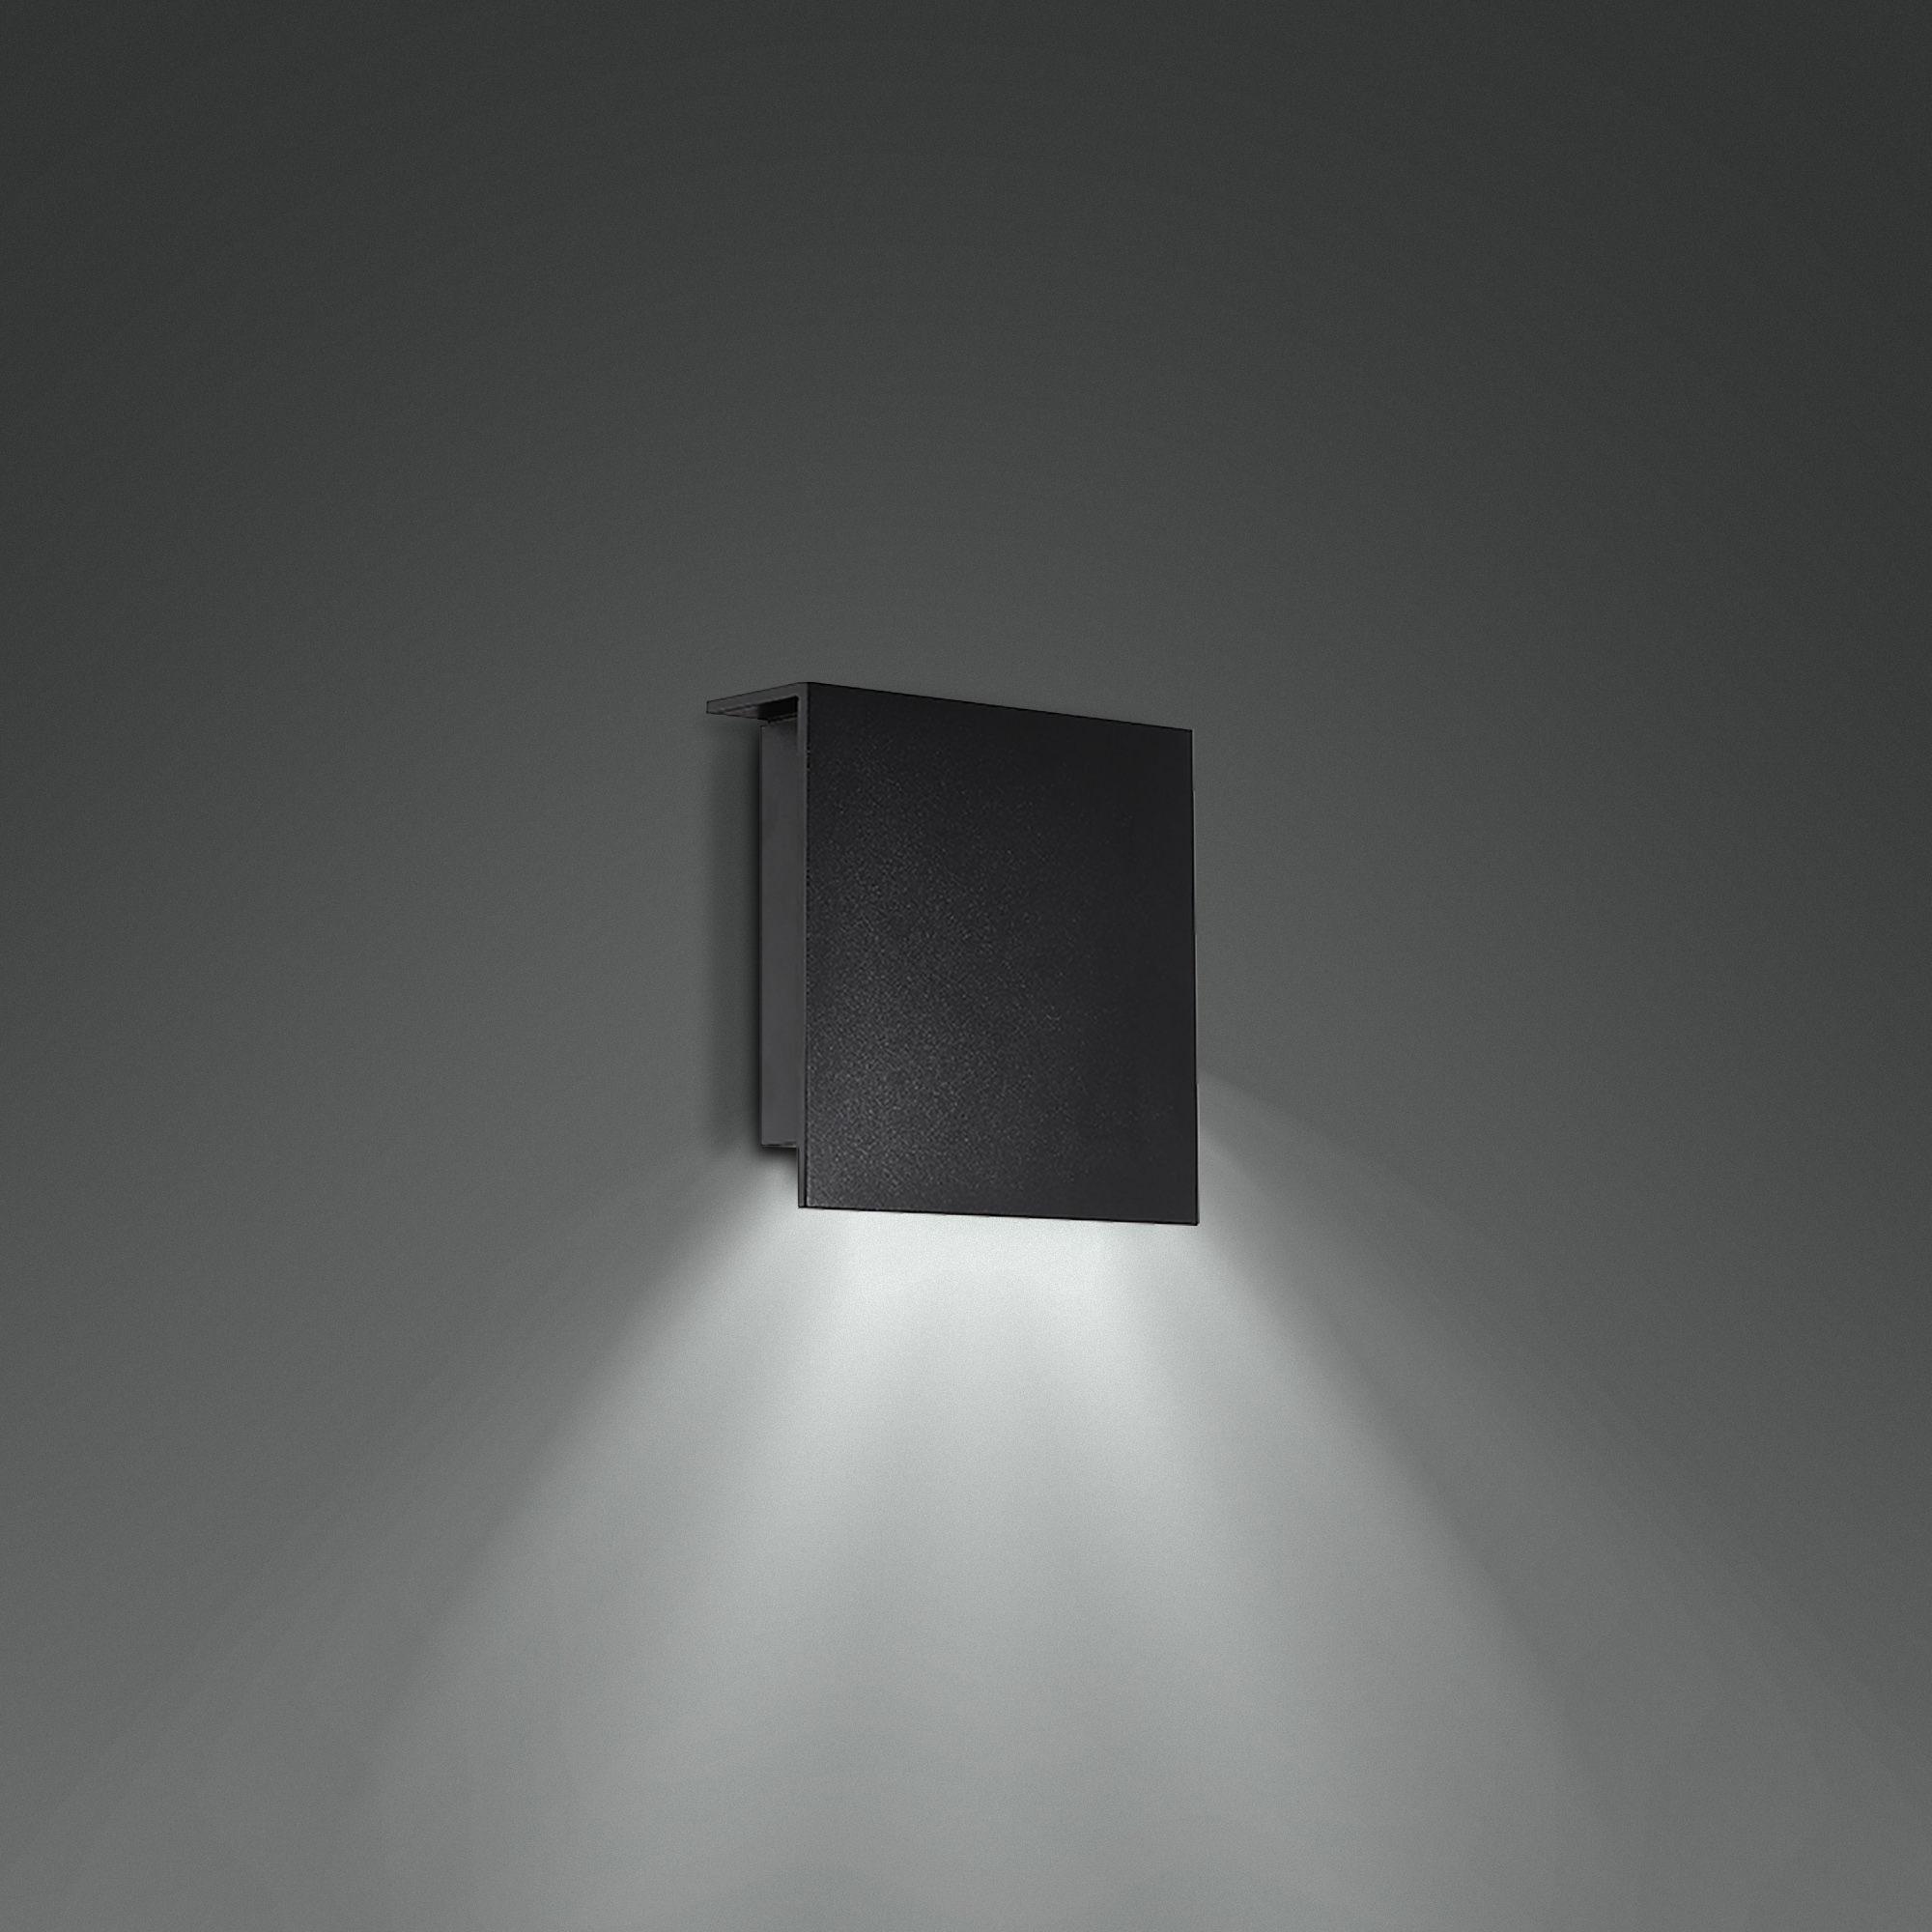 Square lighting product